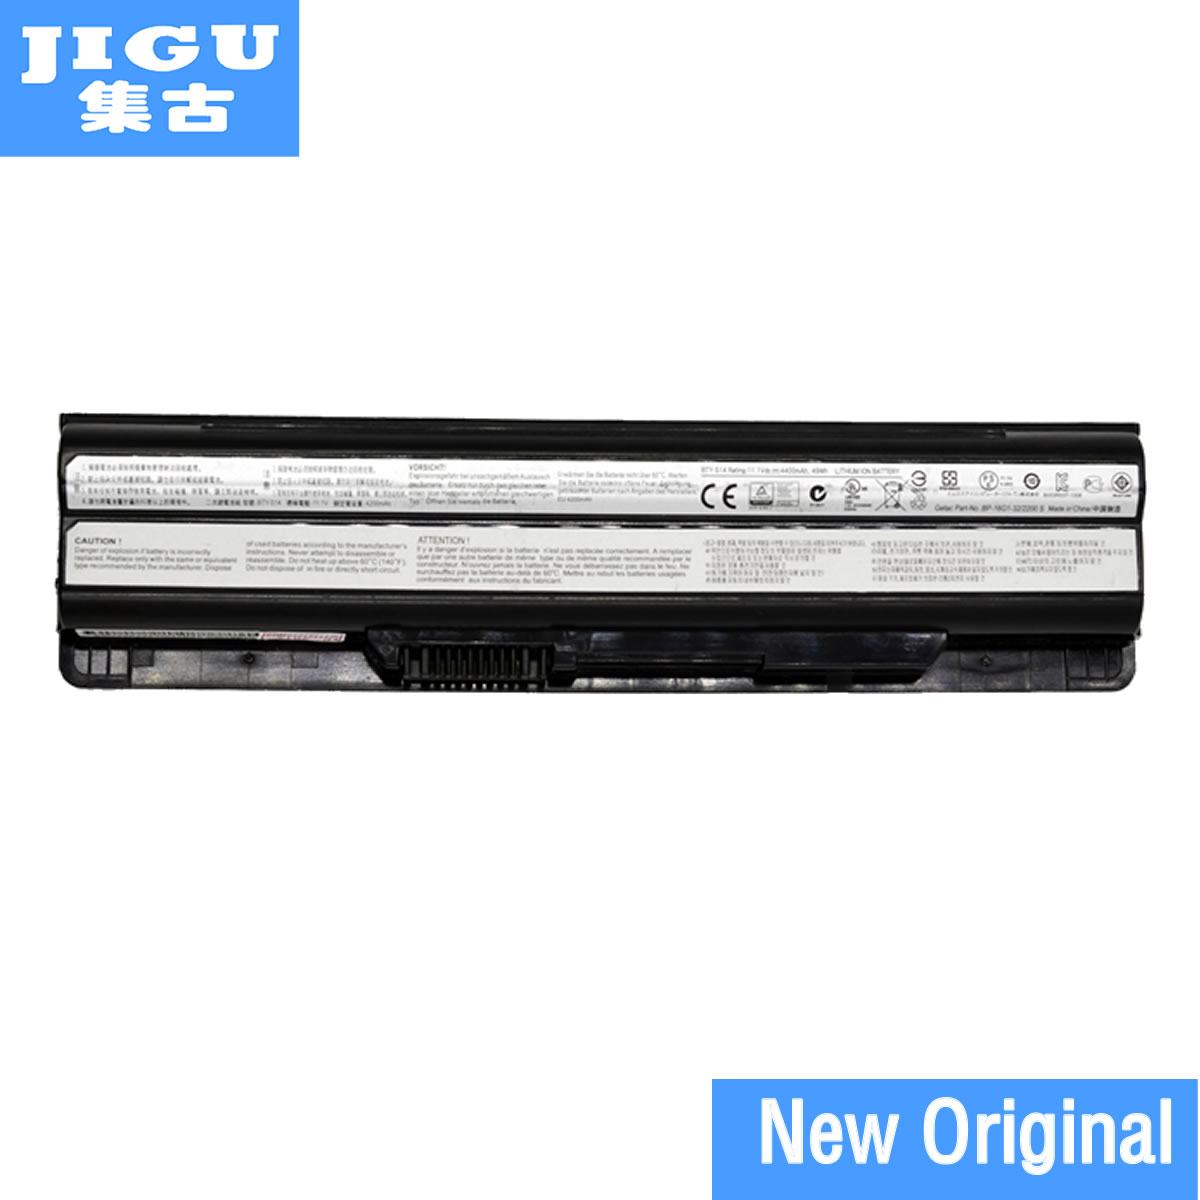 JIGU Original Laptop Battery For MSI FX610 FX620 FX700 GP60 GE60 GE70 20C 20E 2PC 2PE 2PF 2PG 2PL 2QD 2QE 2QL GE60 laptop keyboard for msi gs60 2pc 2pe 2pl 2pm 2qc 6qc gs70 2od 2pc 2pe 2qd 2qe 6qc 6qd 6qe onc gt72 gt740 gt740x gx62 6qd ws60